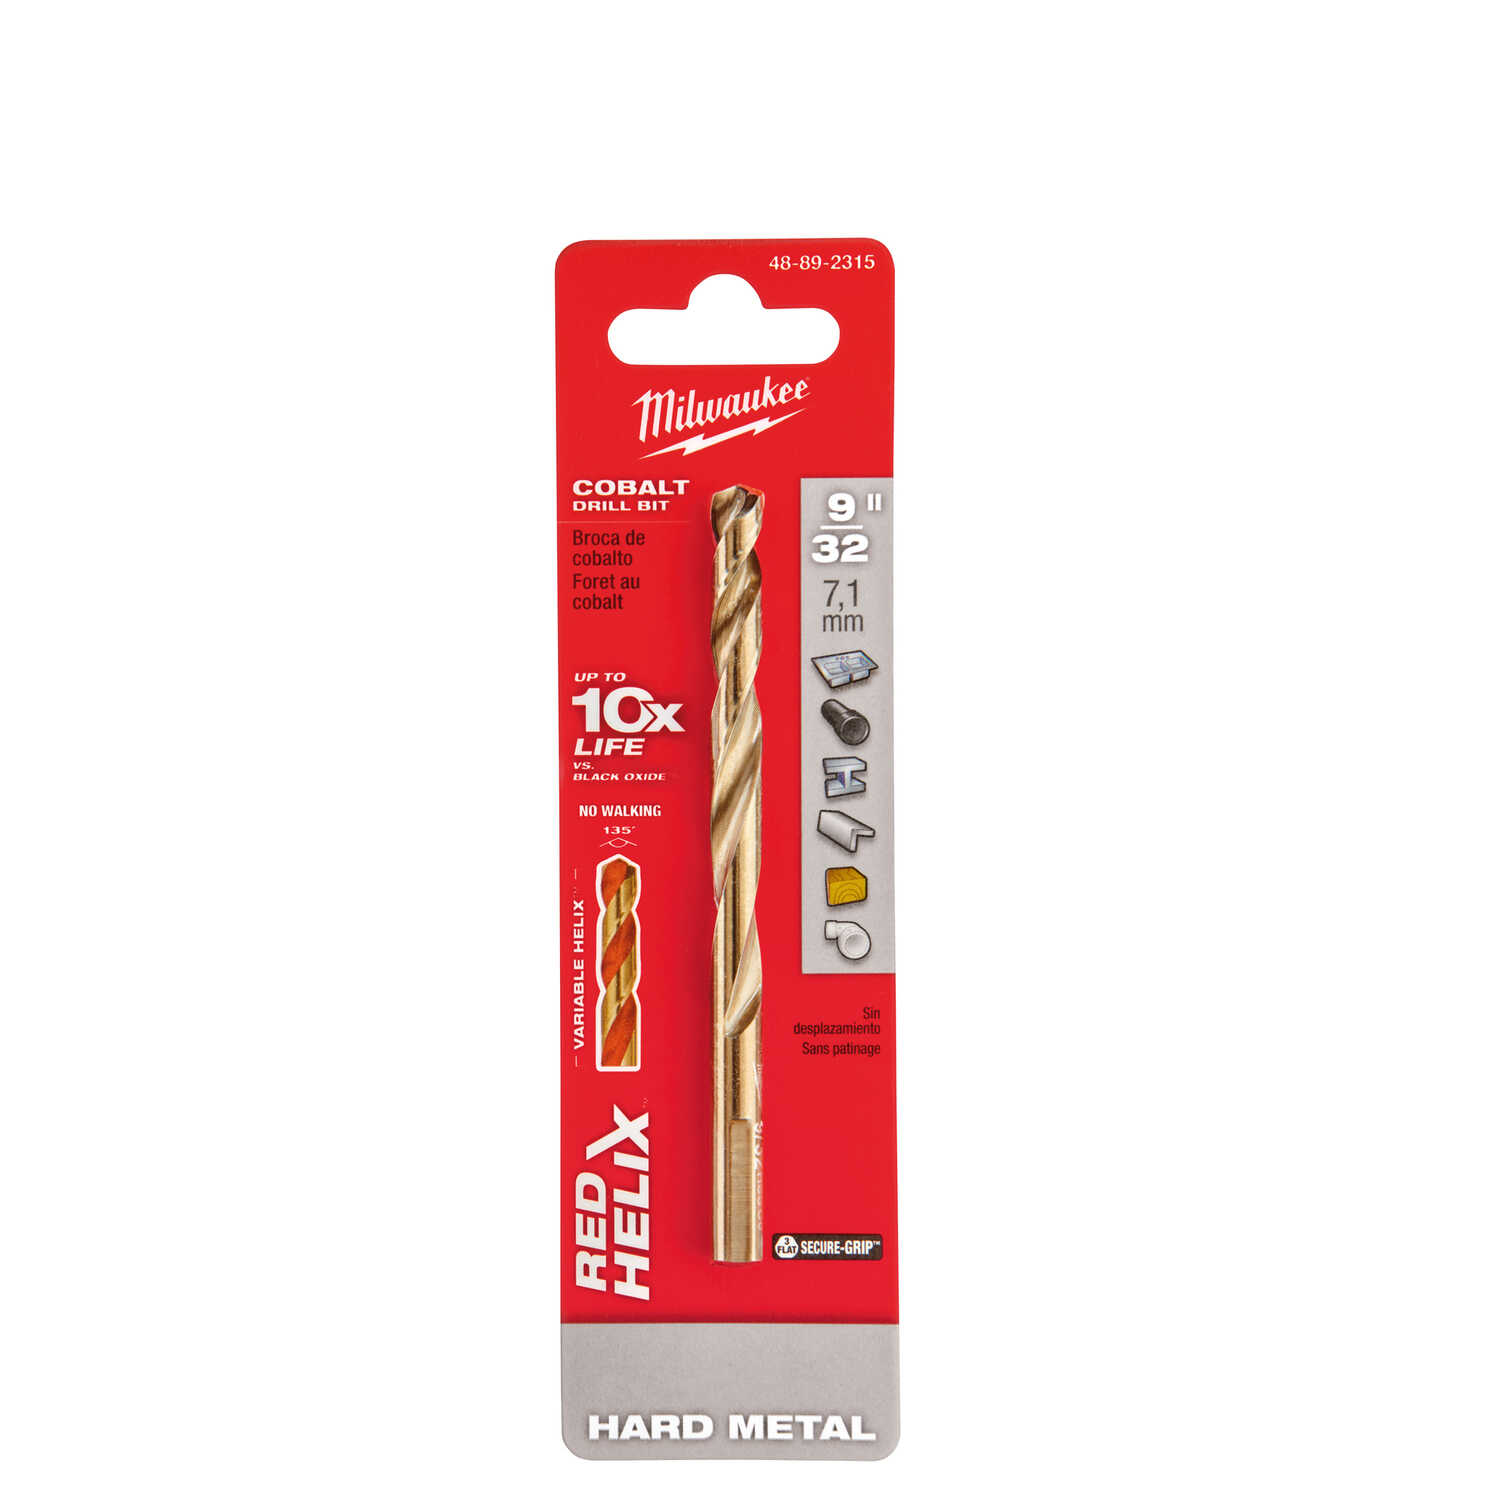 Milwaukee  RED HELIX  9/32 in. Dia. x 4-5/16 in. L Cobalt Steel  Drill Bit  1 pc. THUNDERBOLT  3-Fla